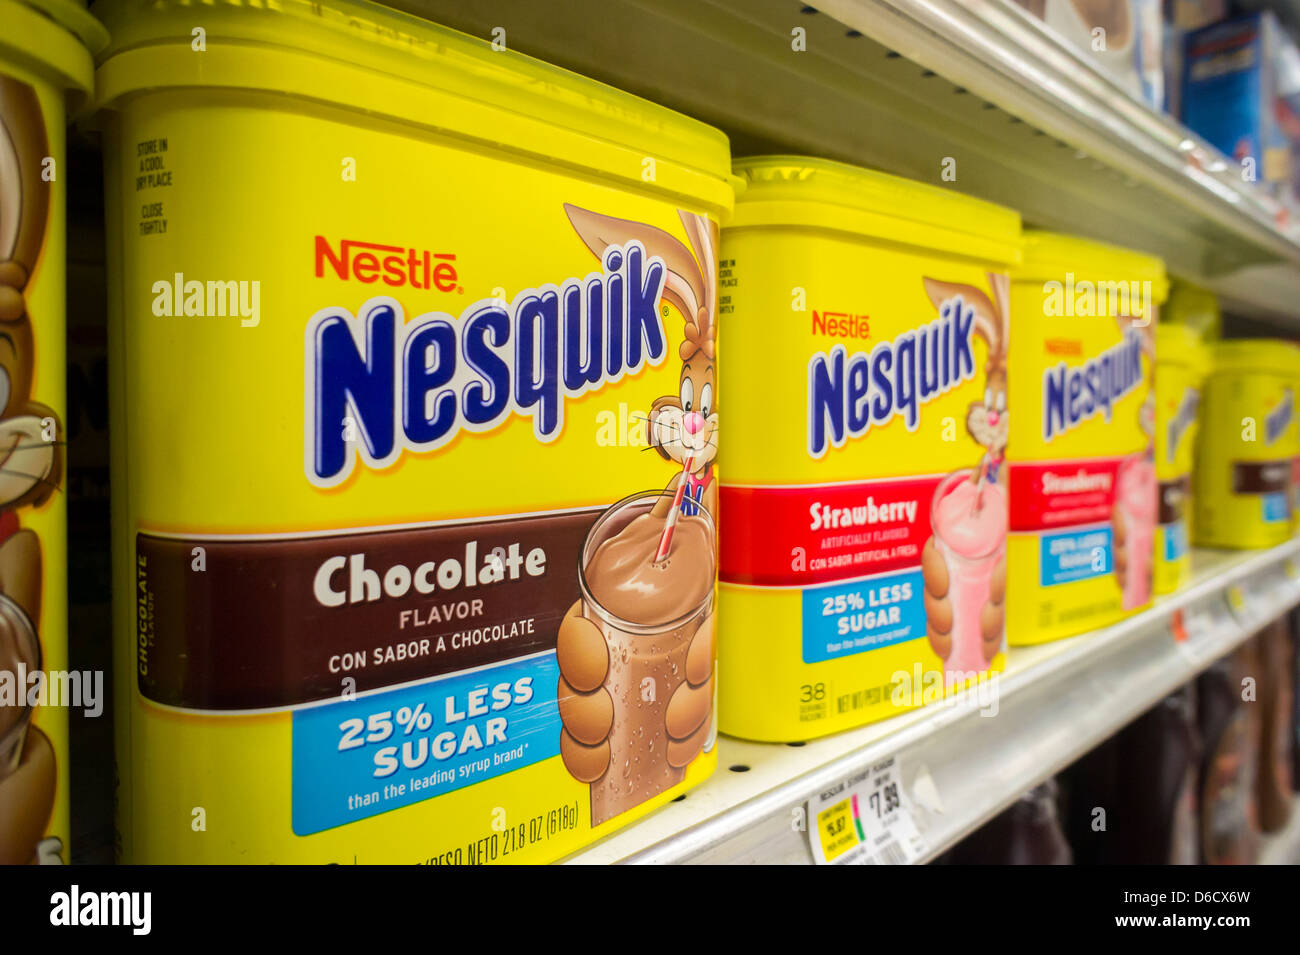 Nestlé Nesquik milk flavoring in chocolate and strawberry is seen ...